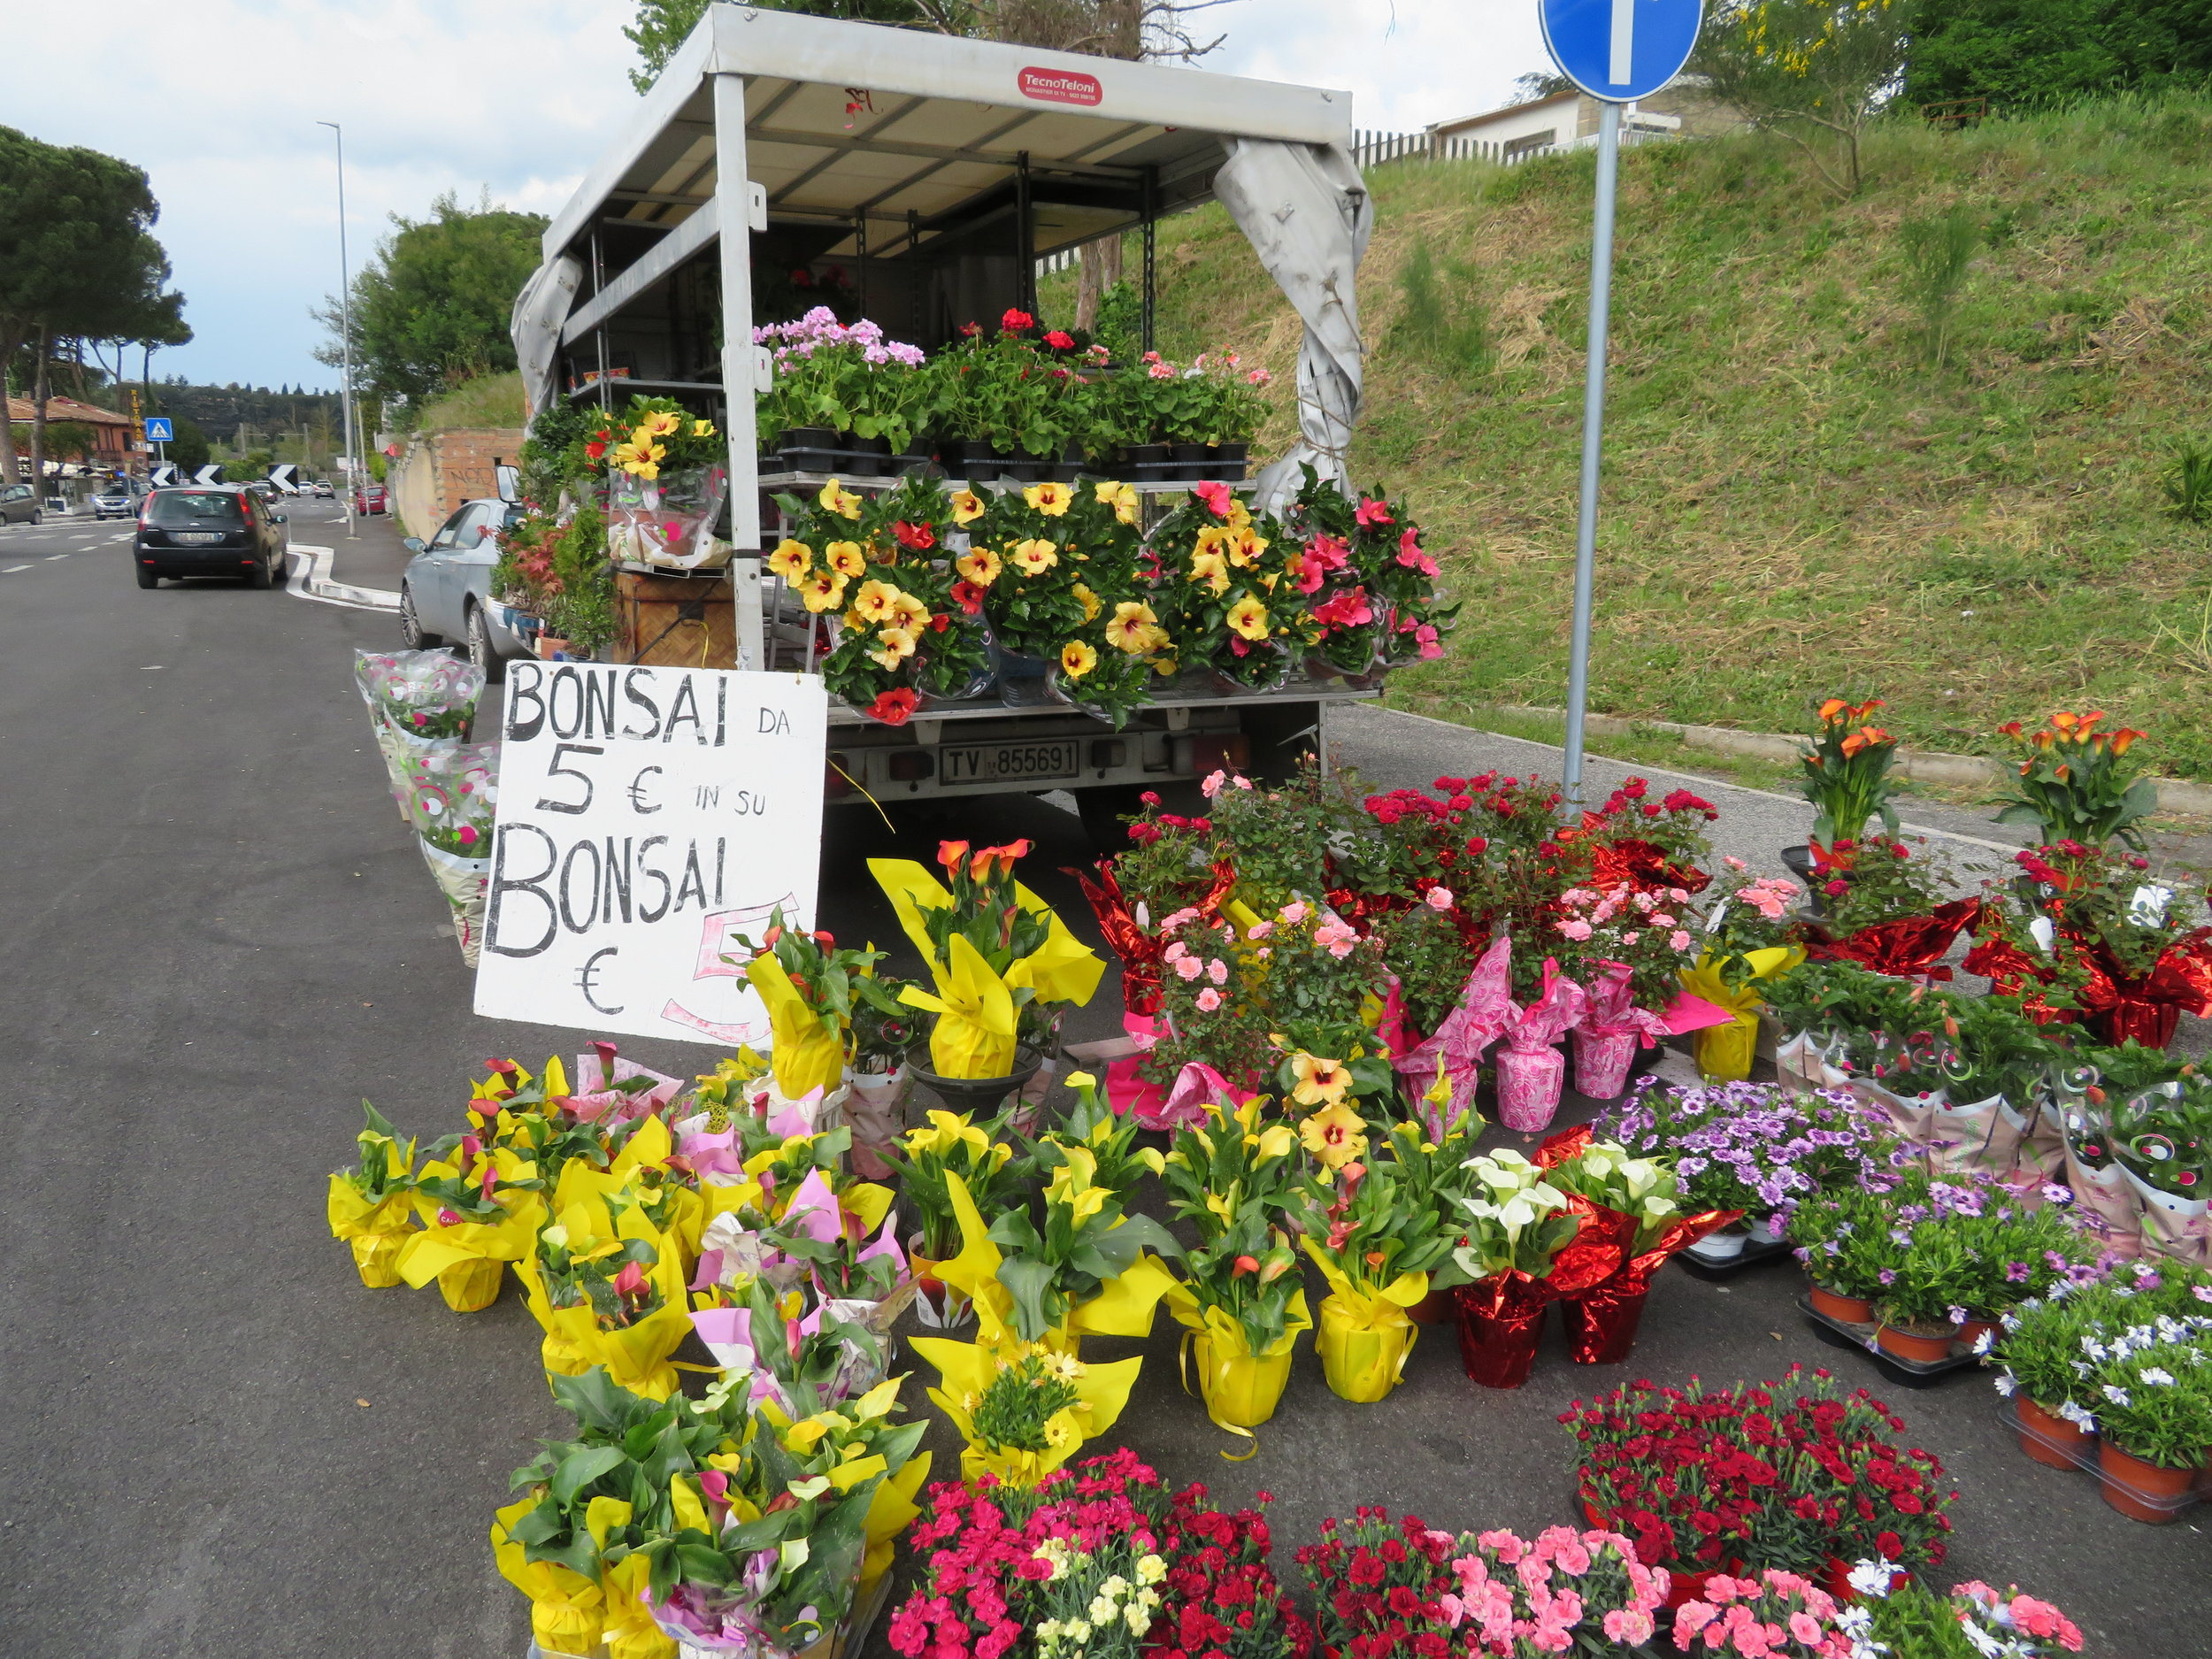 Rome-to-Isola_flower truck.JPG